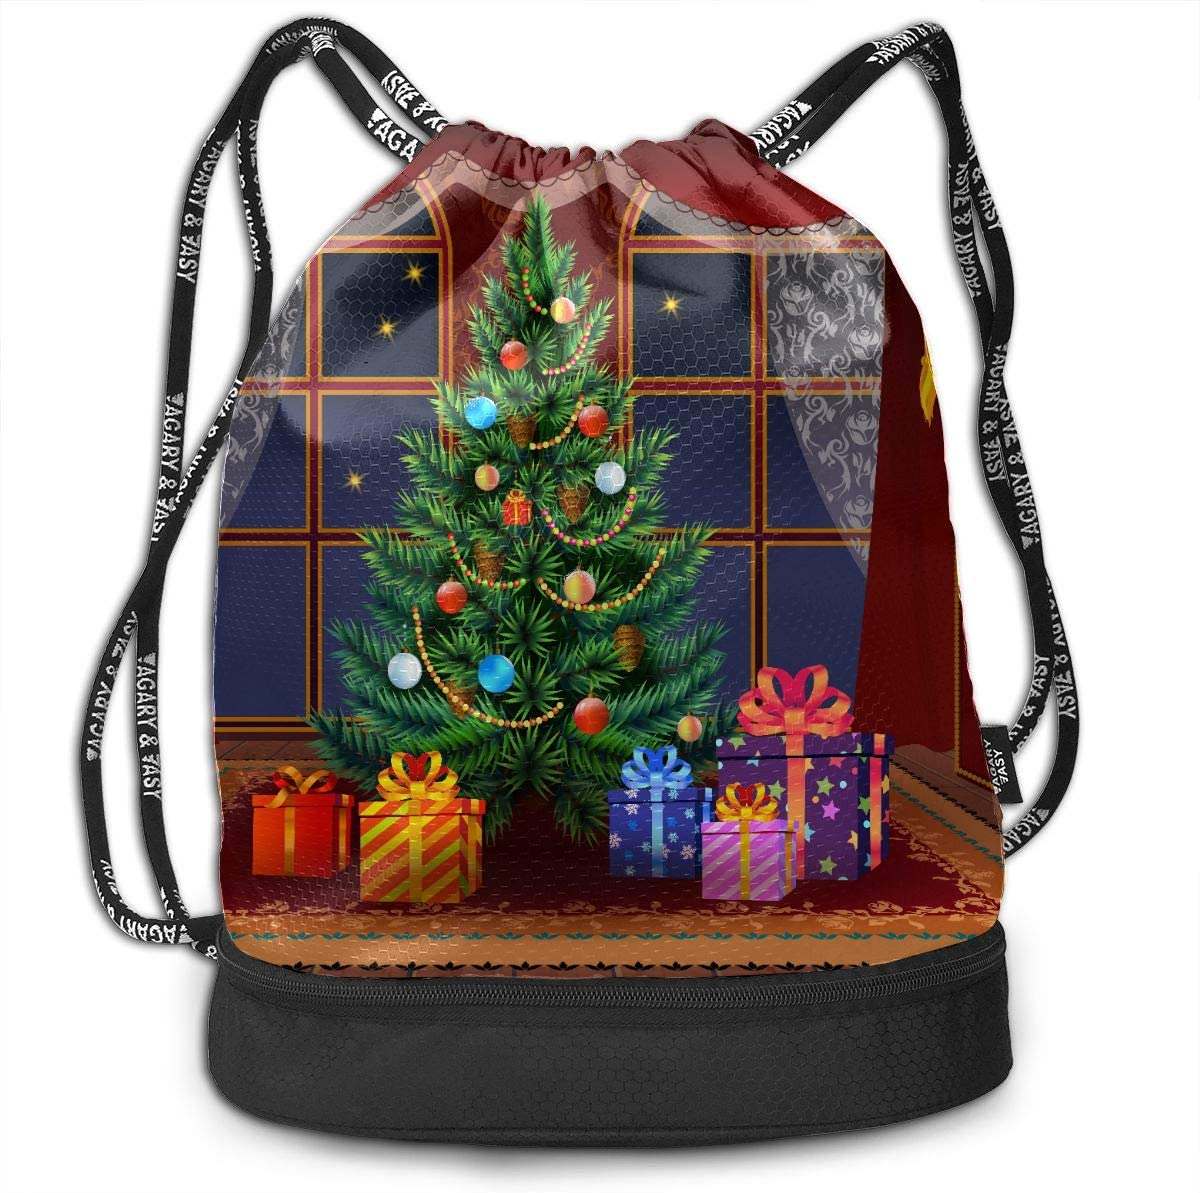 Drawstring Gym Bag Women Merry Christmas Repeat Trees Happy Travel Backpack Small Hiking Backpack Lightweight With Zipper Pocket Sports Athletic School Travel Gym Cinch Sack